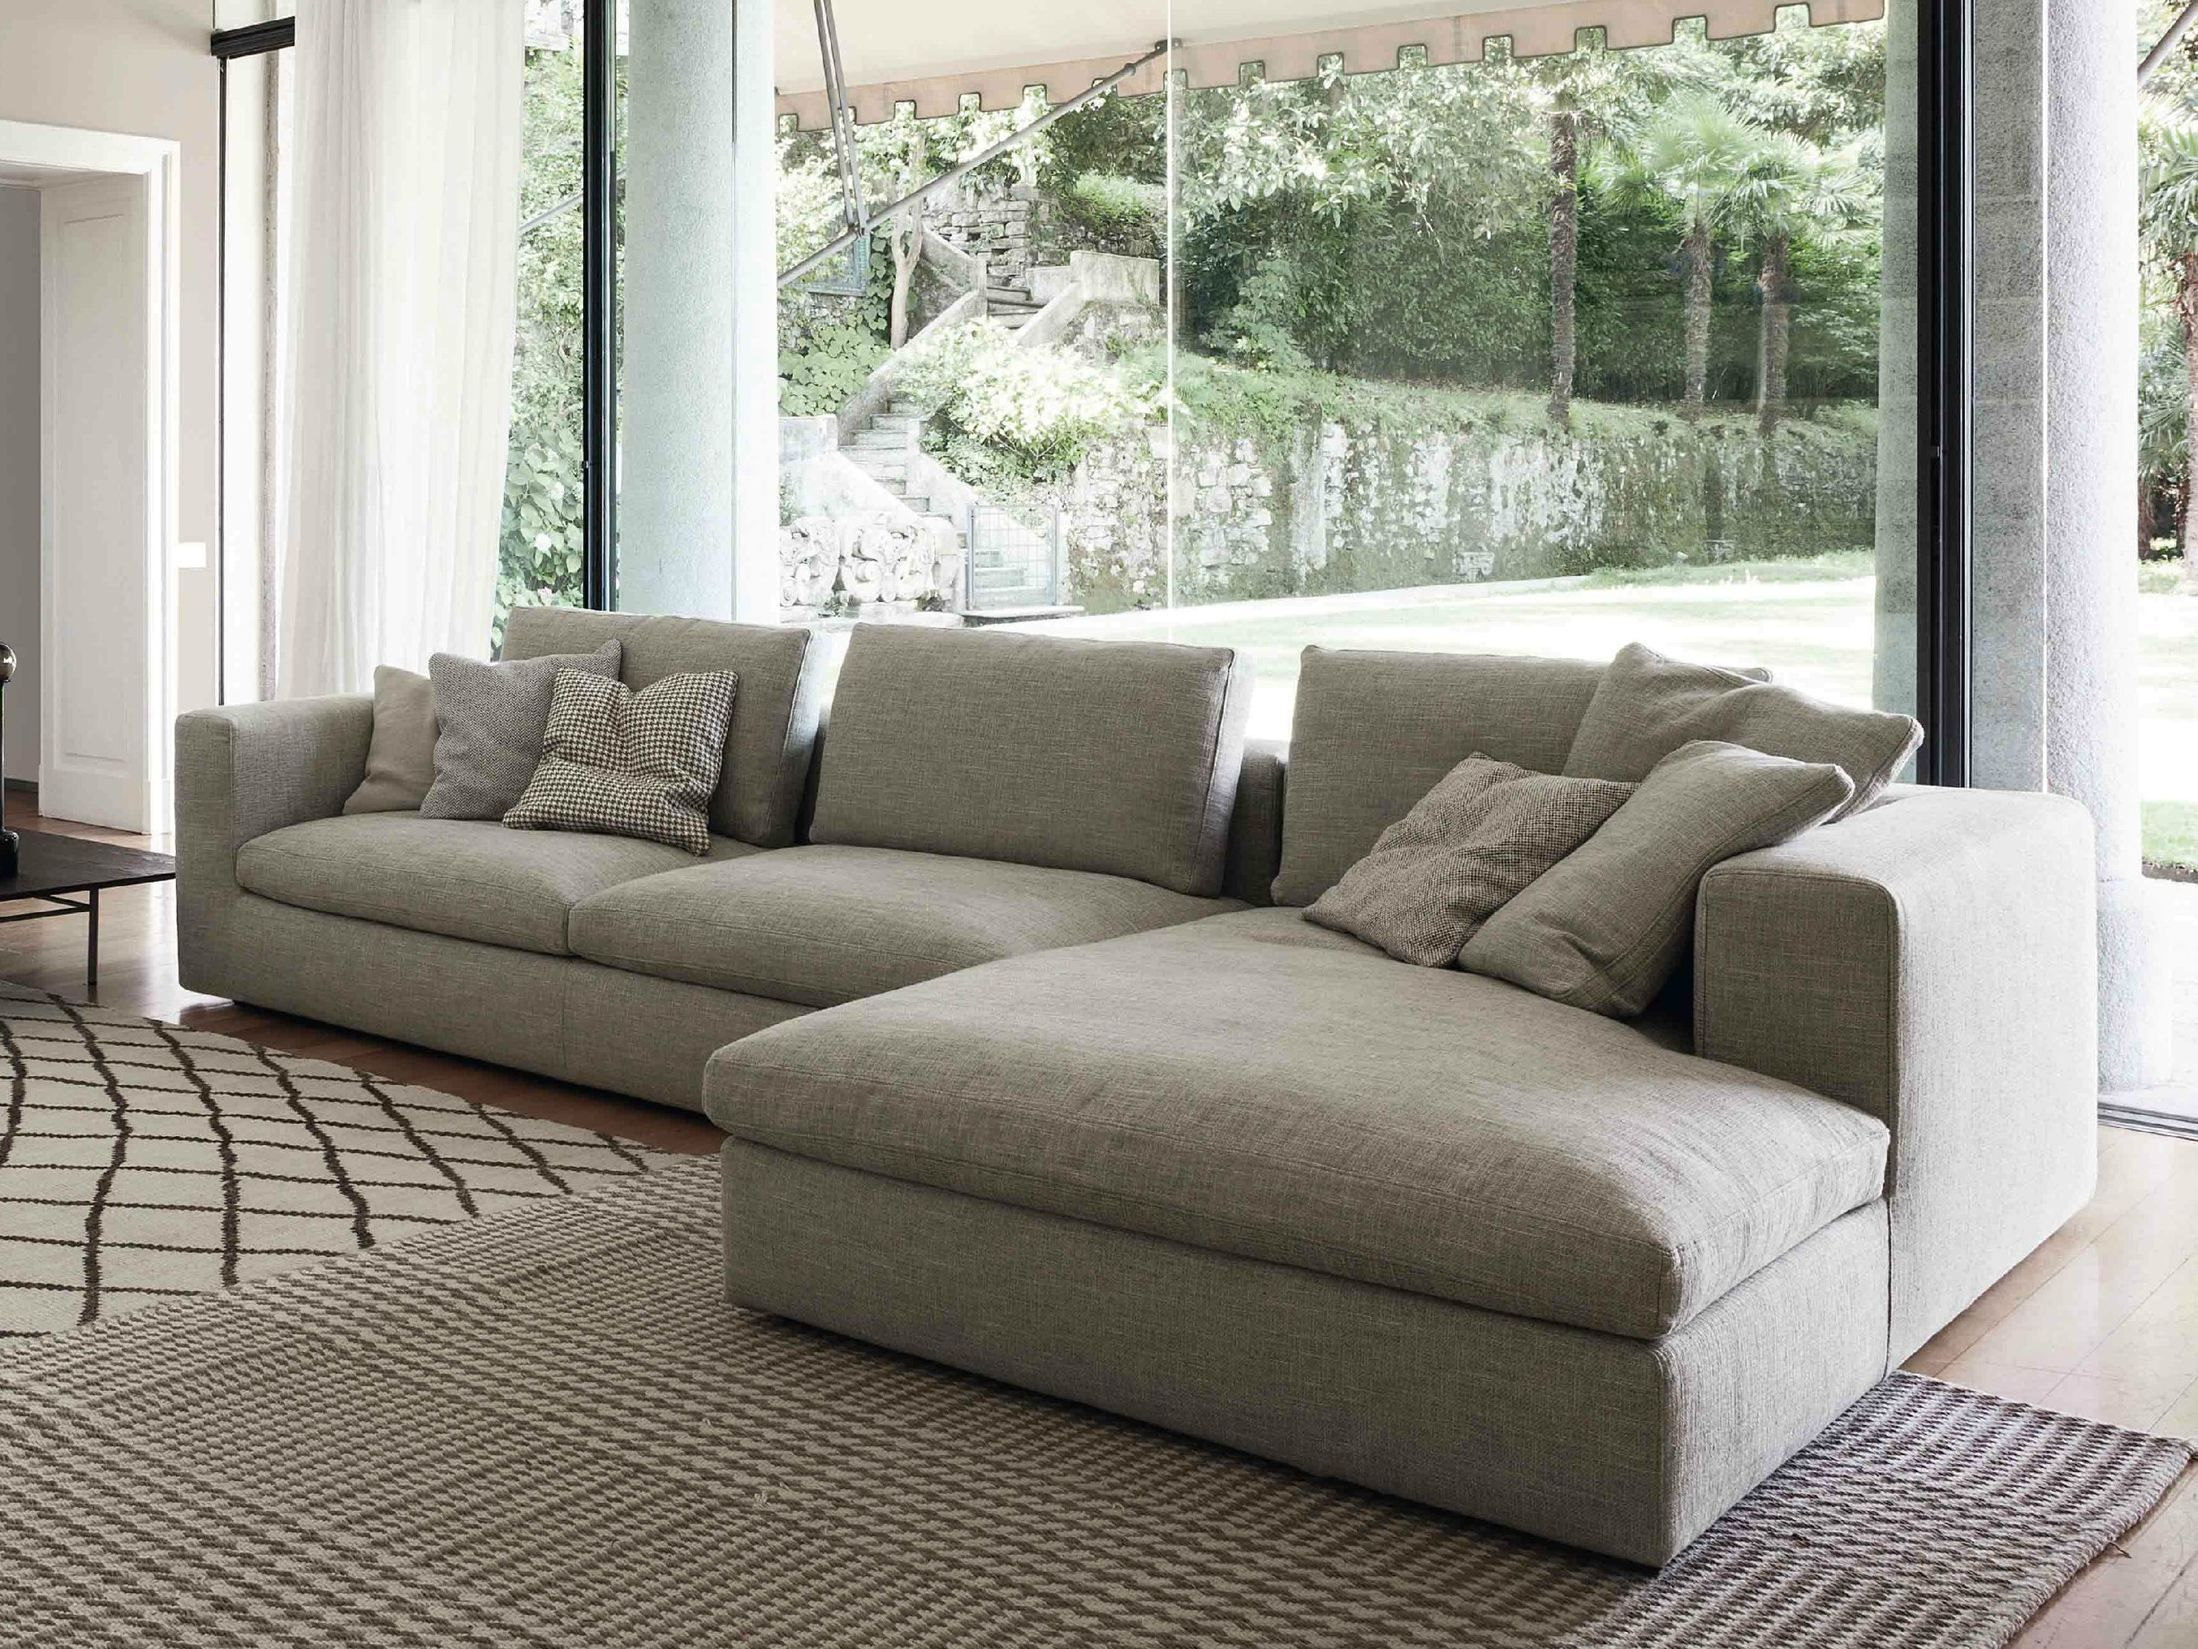 Best 25 Sectional sofa with chaise ideas on Pinterest